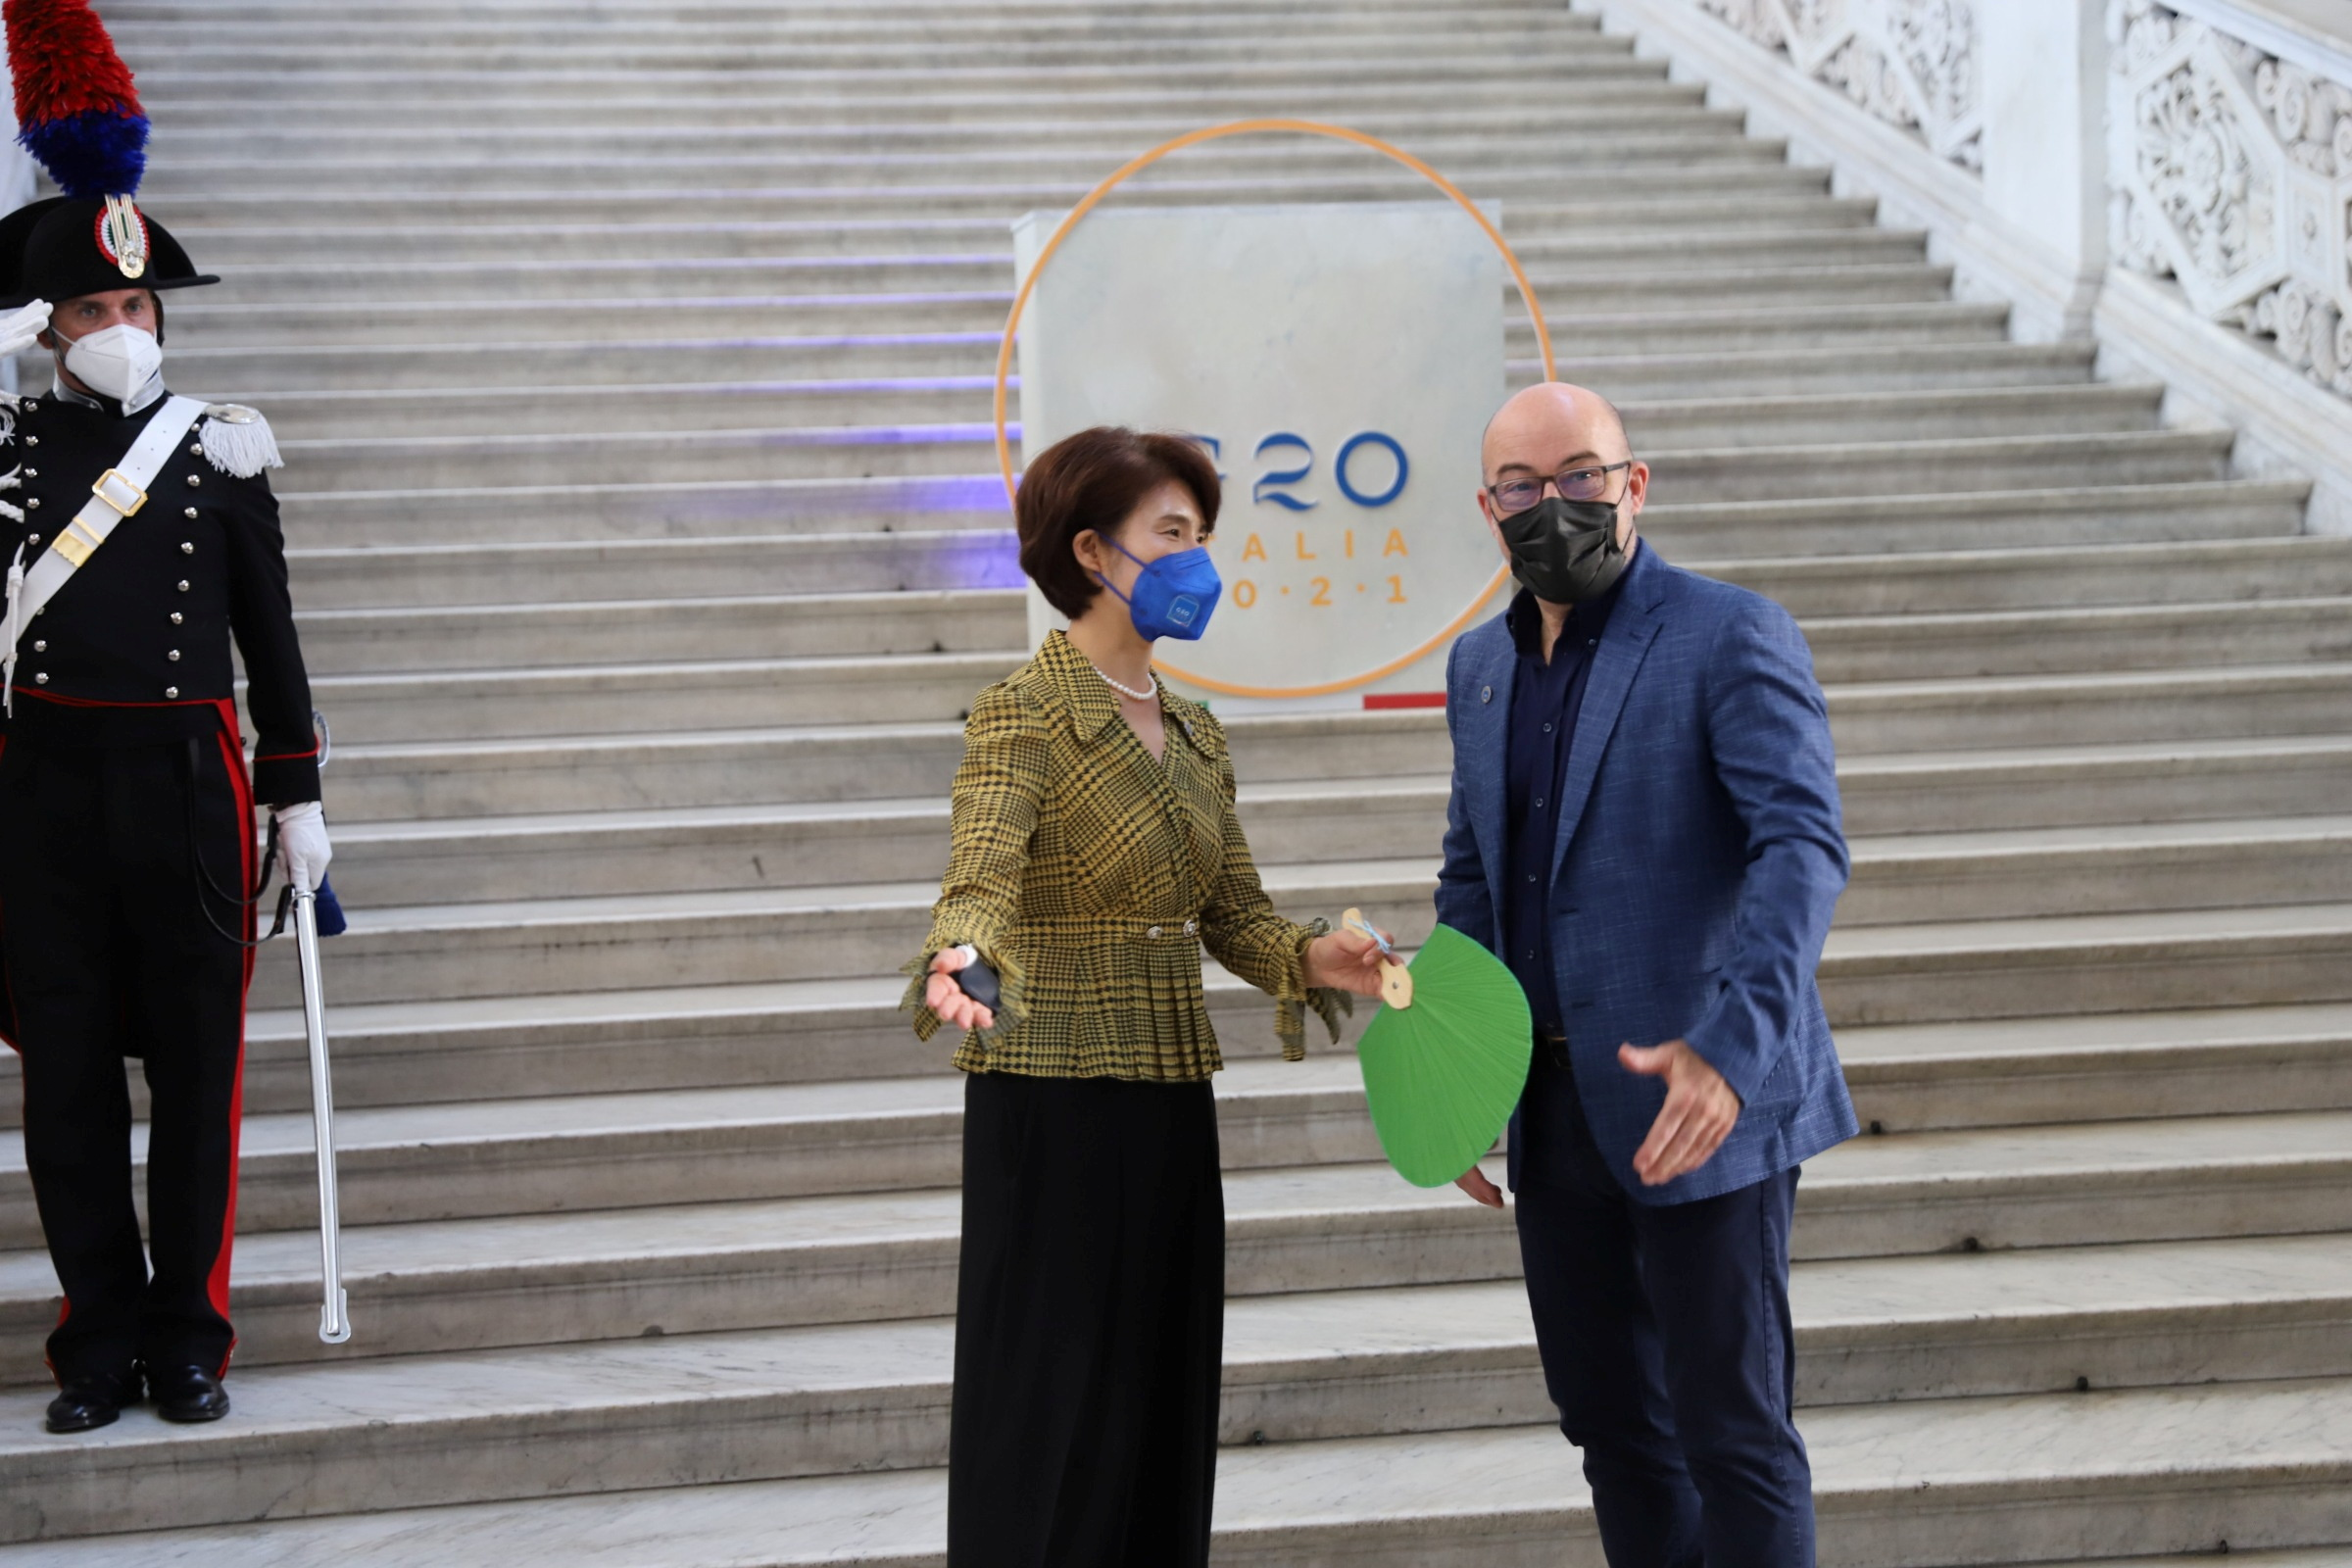 South Korea's Environment Minister Han Jeoung-ae and Italy's Ecological Transition Minister Roberto Cingolani greet one another at the start of the G20 Environment, Climate and Energy Ministers' Meeting in Naples, Italy, July 22, 2021. G20Italy/Handout via REUTERS